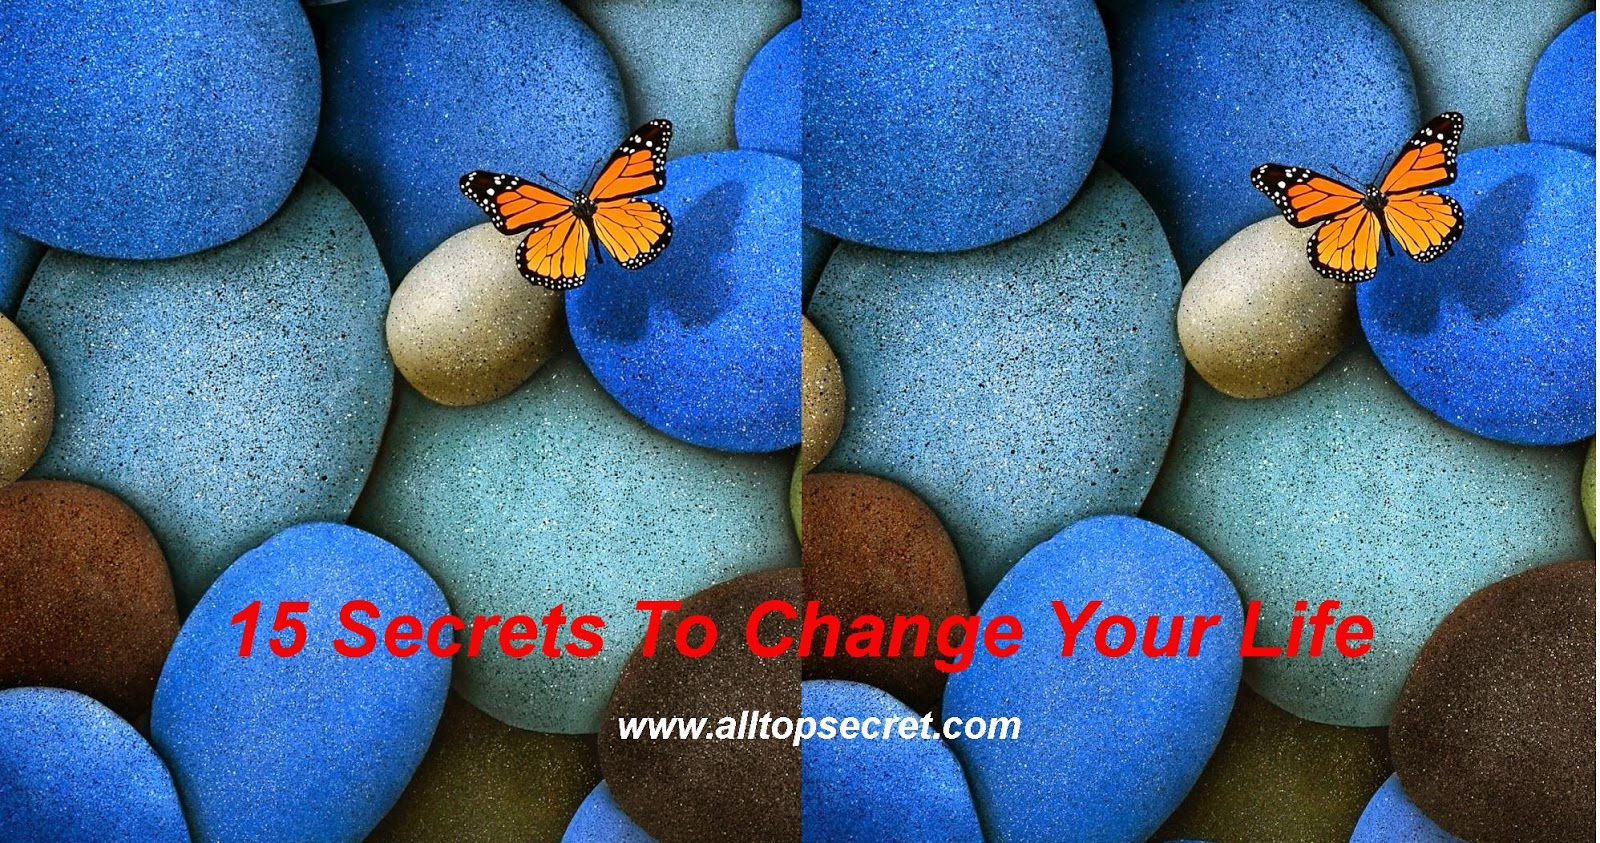 15 Secrets To Change Your Life